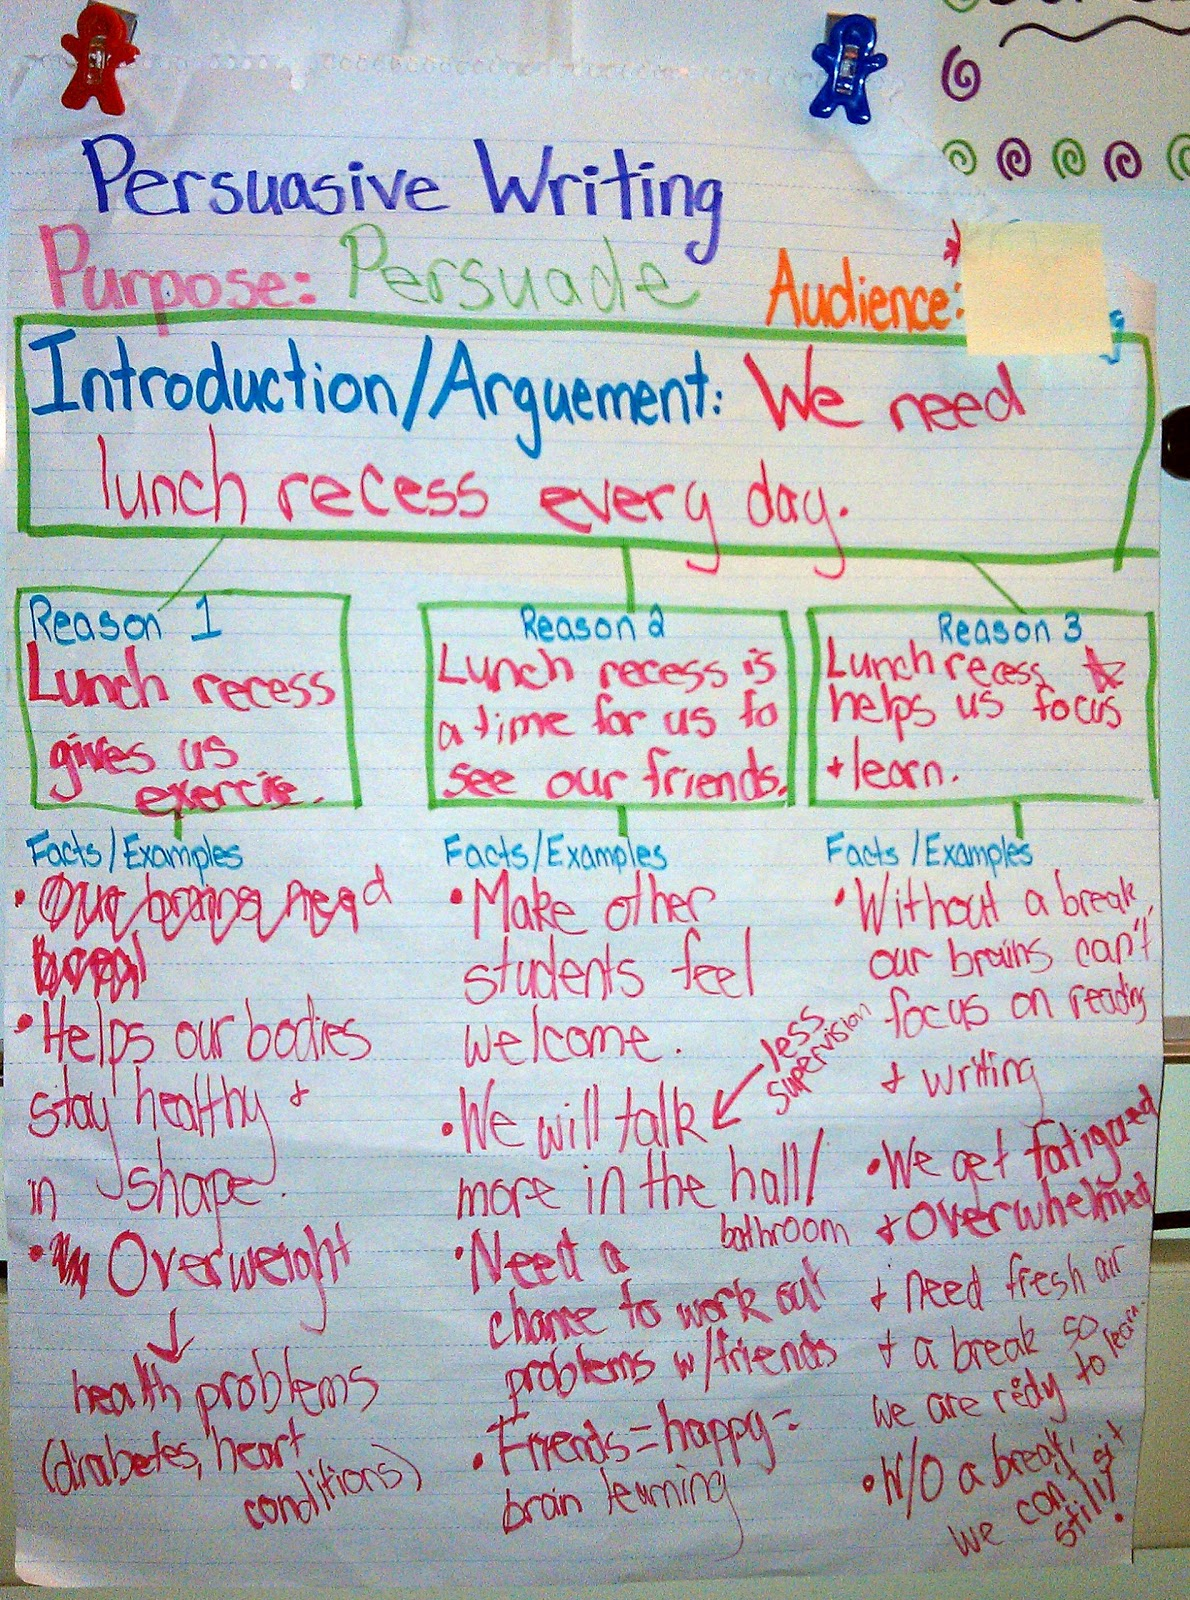 persuasive writing examples 4th grade 15 persuasive writing prompts for elementary kids use this listing of fun, persuasive writing ideas for elementary kids in your classroom today we should not have a school dress code pets should be allowed in school school break times should be longer there should be no homework the school day should be shorter.